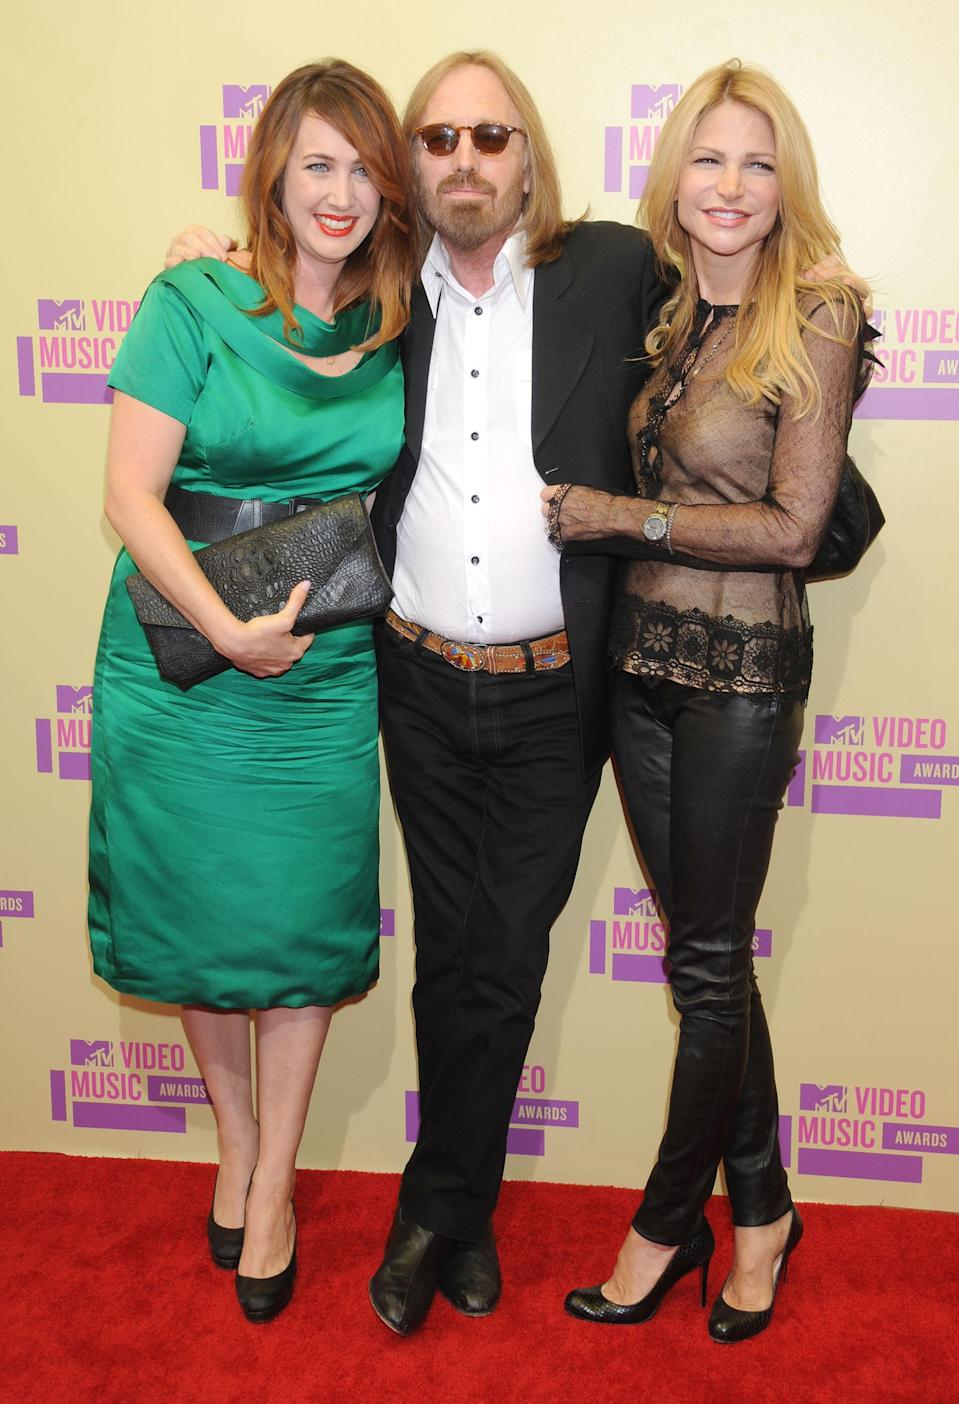 Tom Petty turned up at the 2012 VMAs with his daughter Adria and wife, Dana. (Photo: Gregg DeGuire/WireImage)